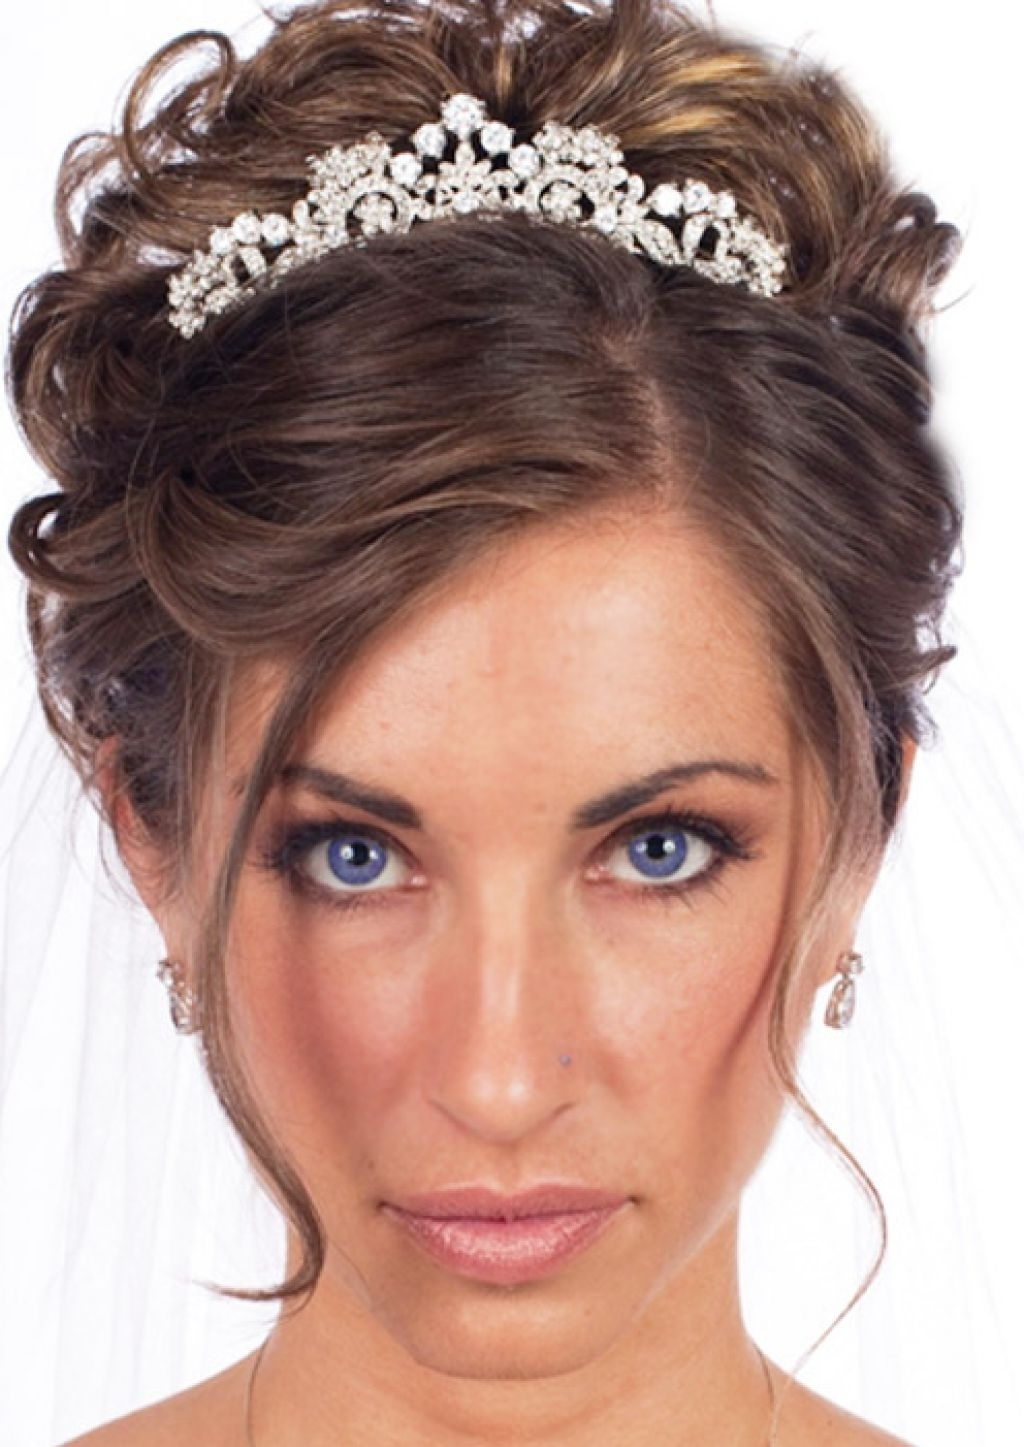 Wedding Updos With Veil Hairstyle – Girly Hairstyle Inspiration Pertaining To Popular Wedding Hairstyles For Short Hair With Veil And Tiara (View 7 of 15)